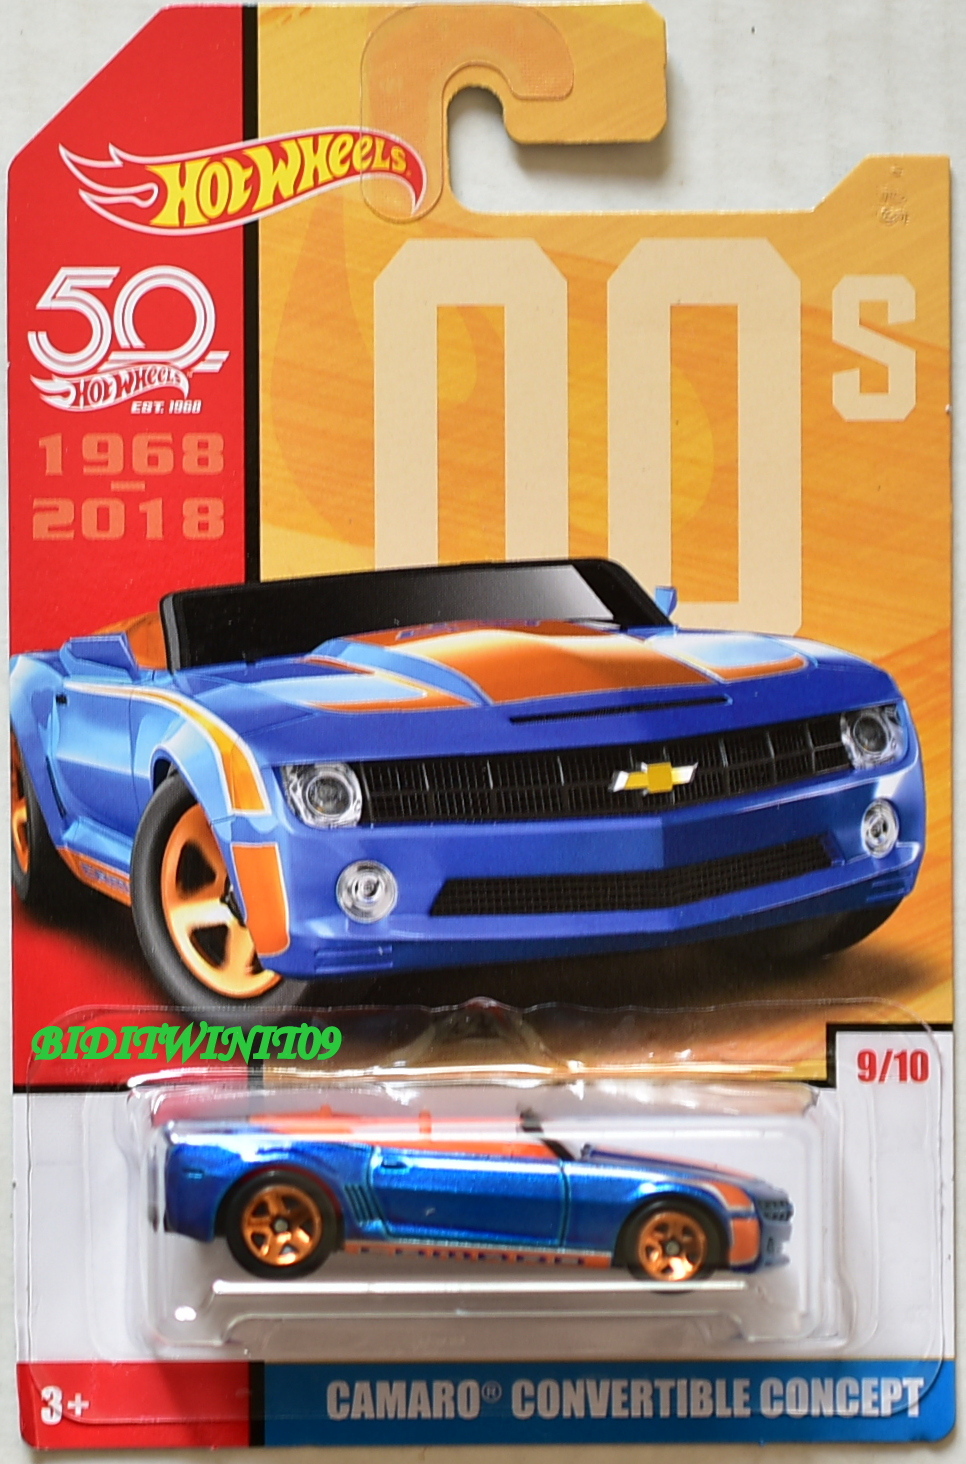 HOT WHEELS 50 YEARS 00S CAMARO CONVERTIBLE CONCEPT #9/10